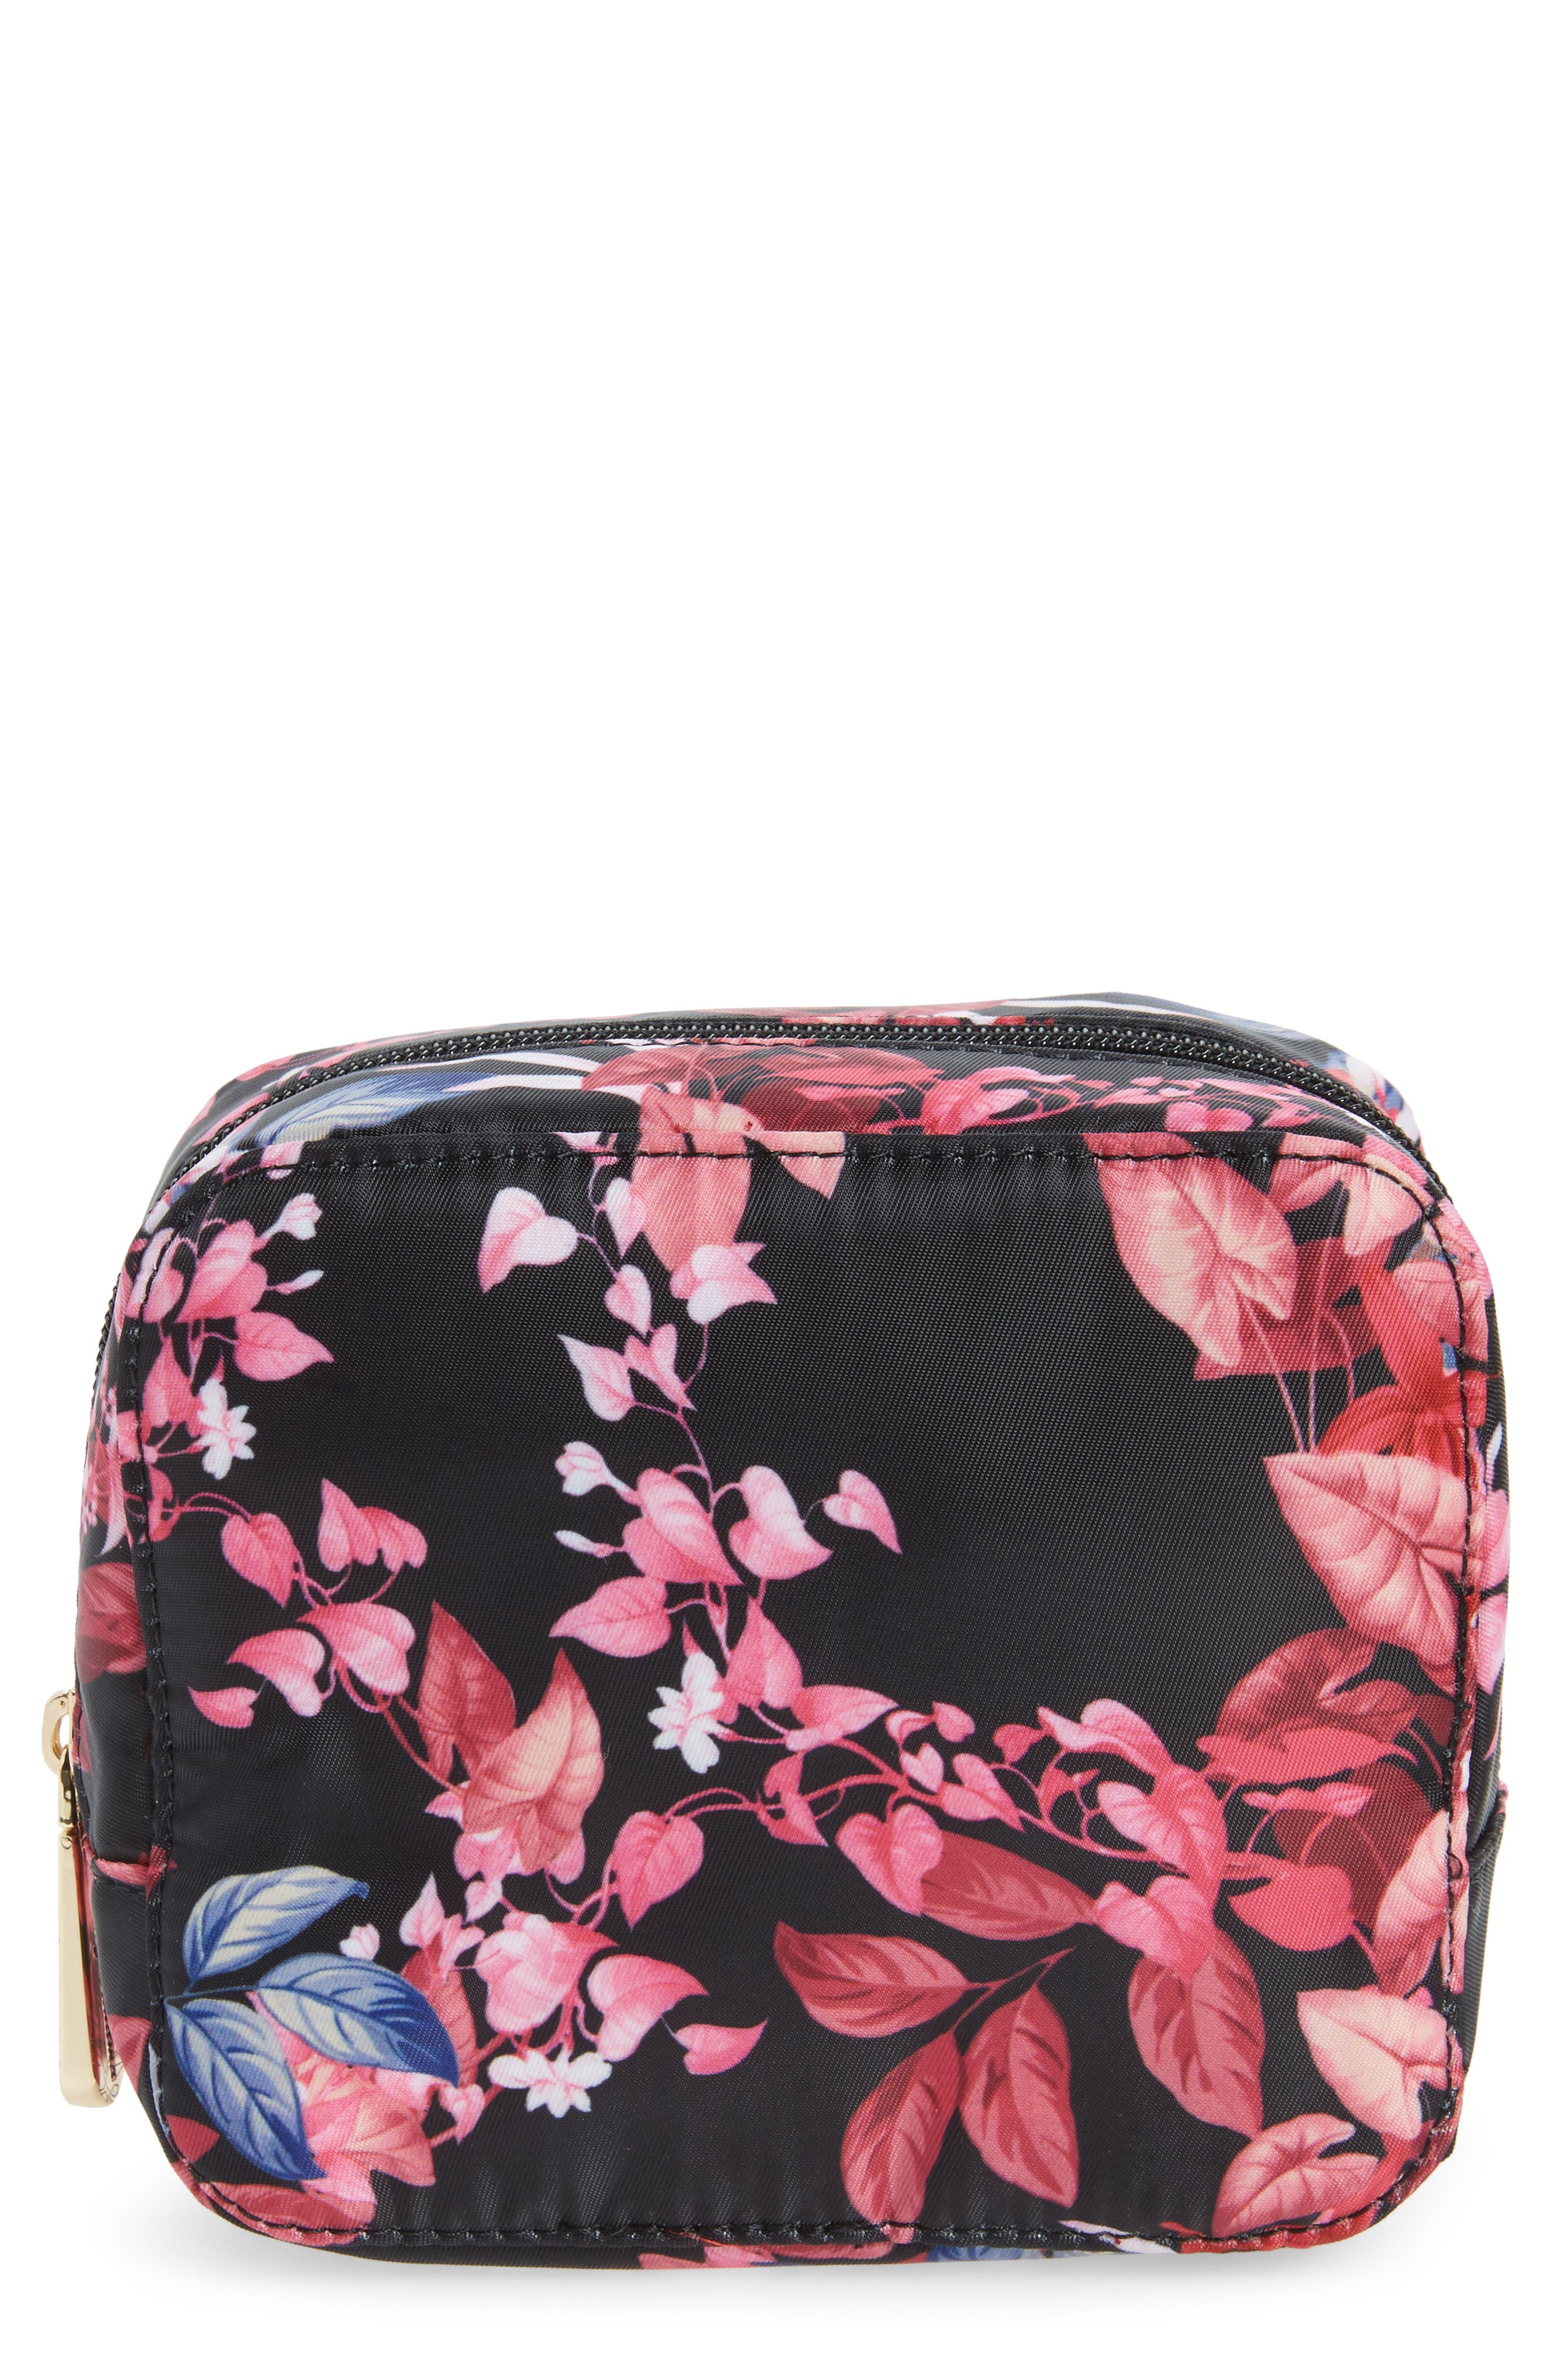 Up in the Air Cosmetics Case & Eye Mask,                             Main thumbnail 1, color,                             250